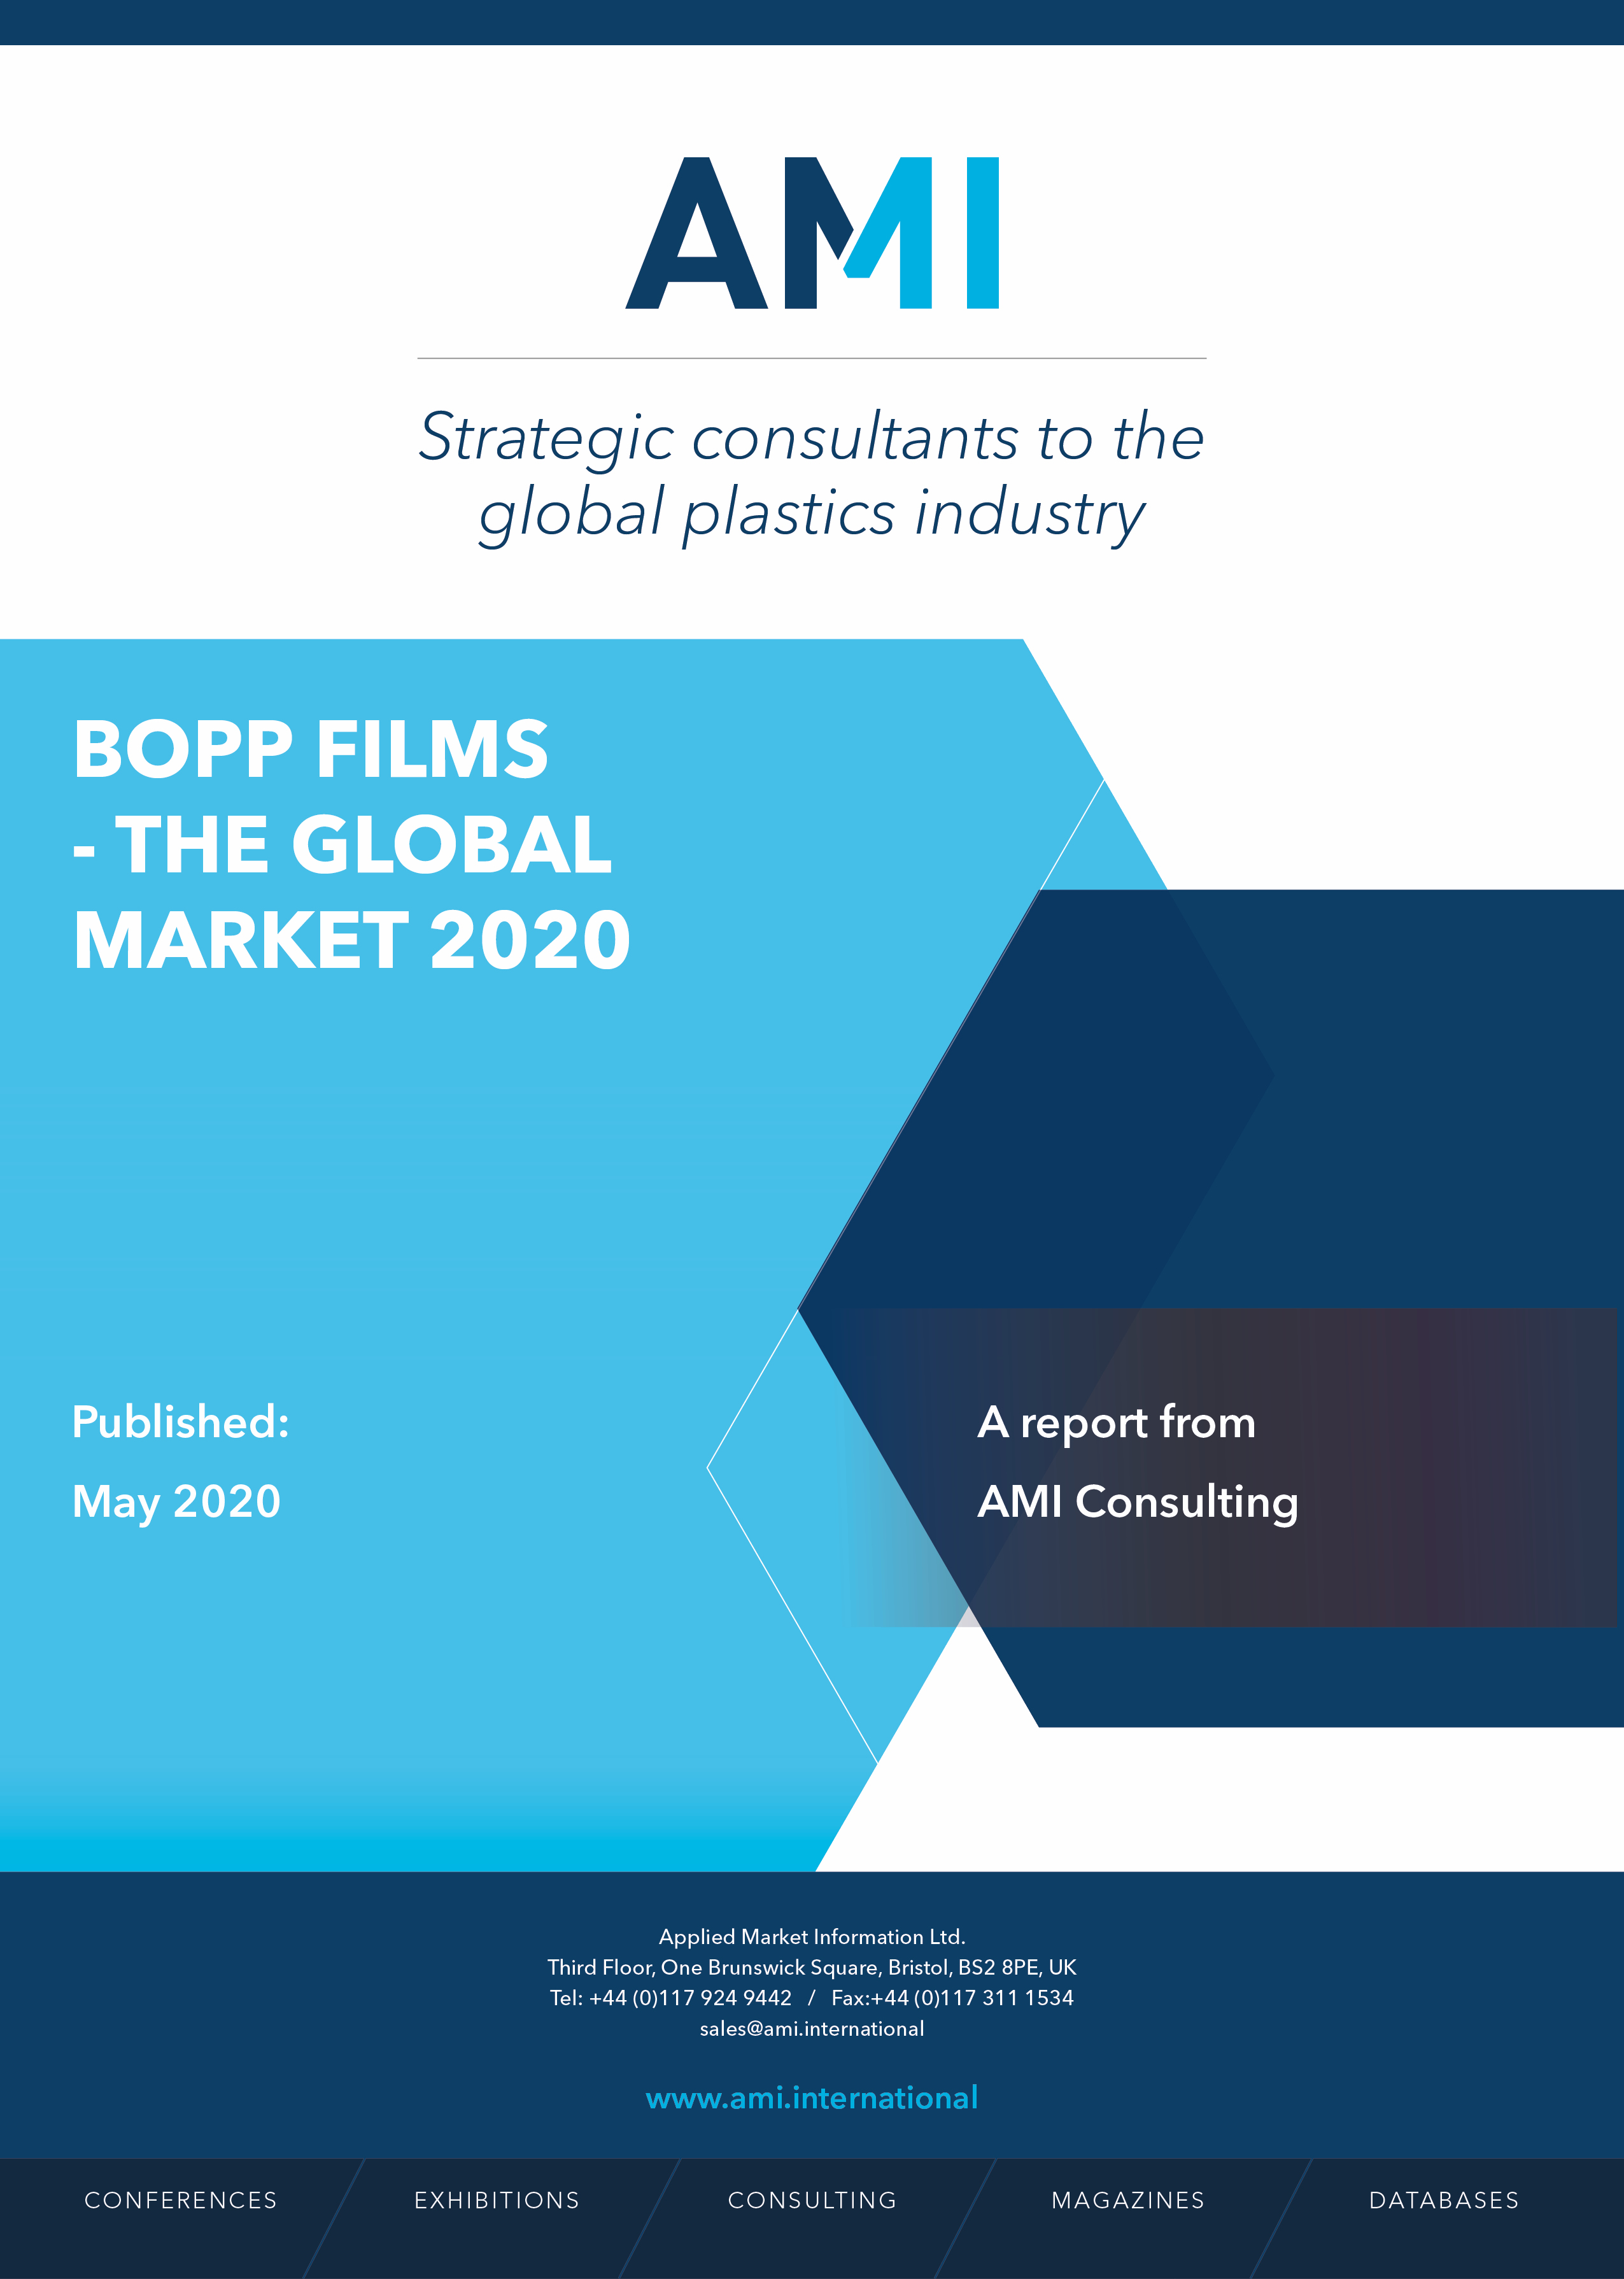 BOPP Films - The Global Market 2020